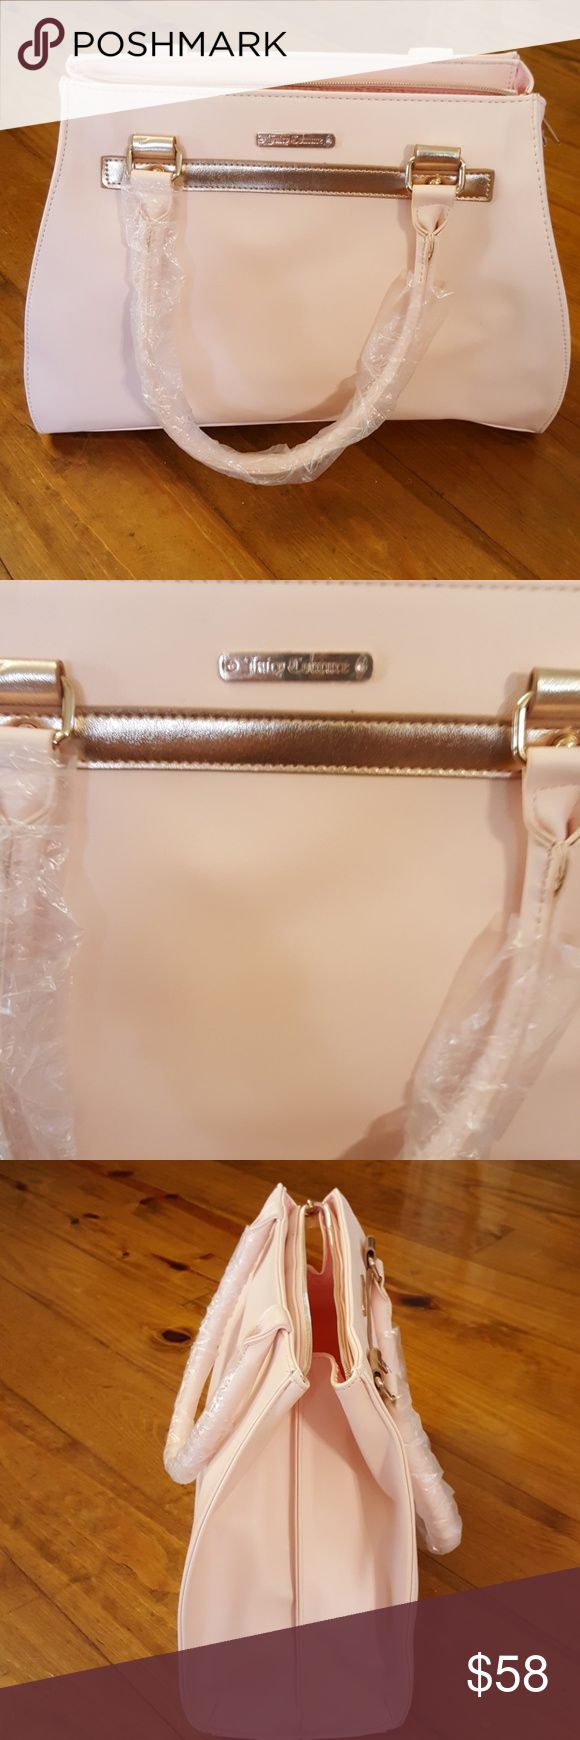 NEW, Juicy Couture handbag Beautiful pale pink Juicy Couture handbag. Never used, still has  wrapping on handles. Very pretty bag. 15 inches wide by 11 inches tall, and 5 inches in depth. Accentuated with gold zipper and buckles on handles. NWOT Juicy Couture Bags